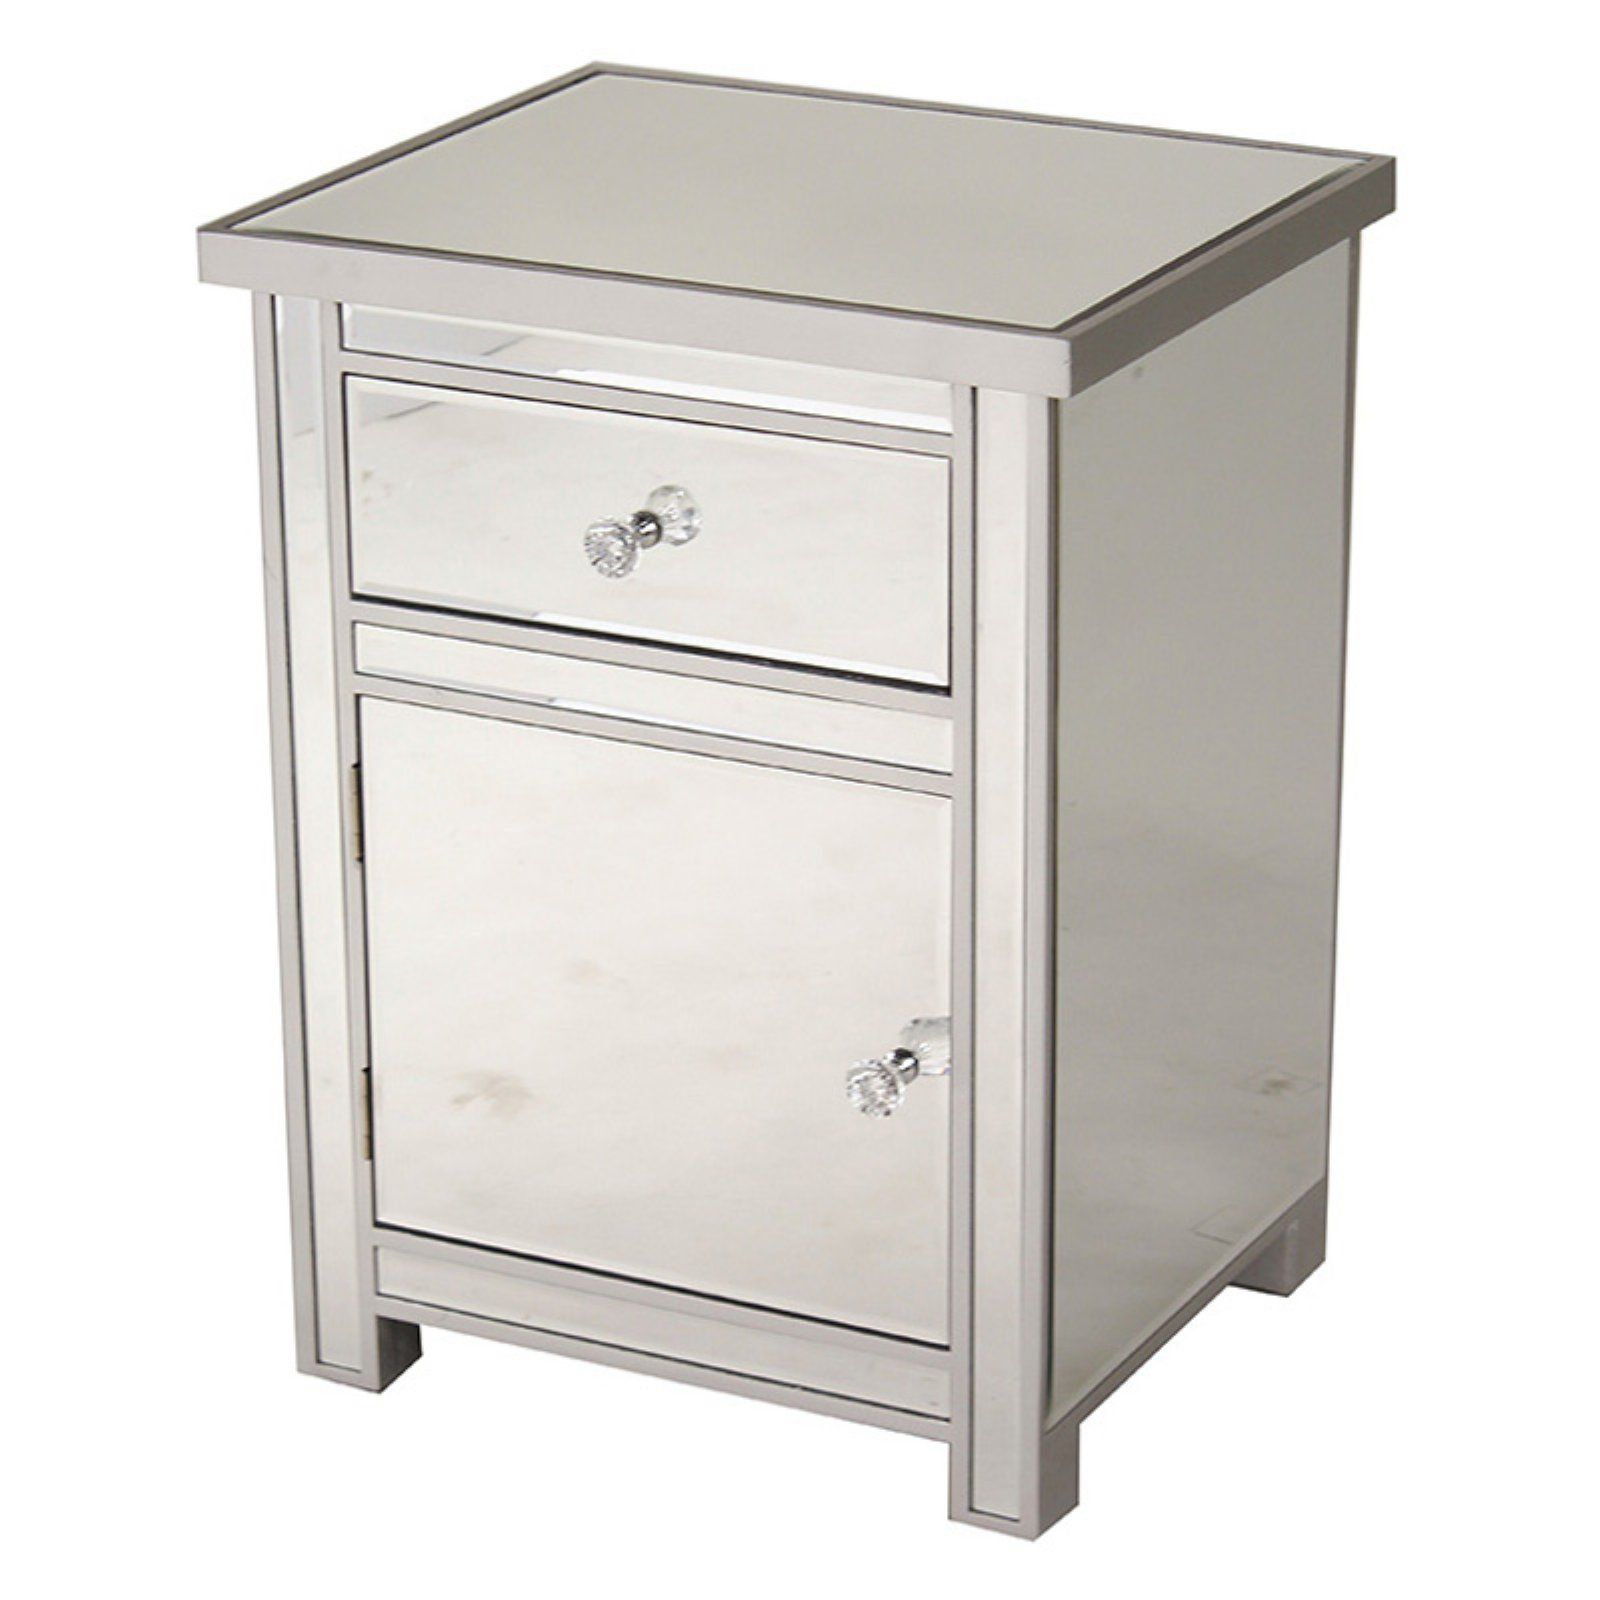 save off c5433 38b6f Heather Ann Creations Emmy Small 1 Drawer 1 Door Mirrored ...